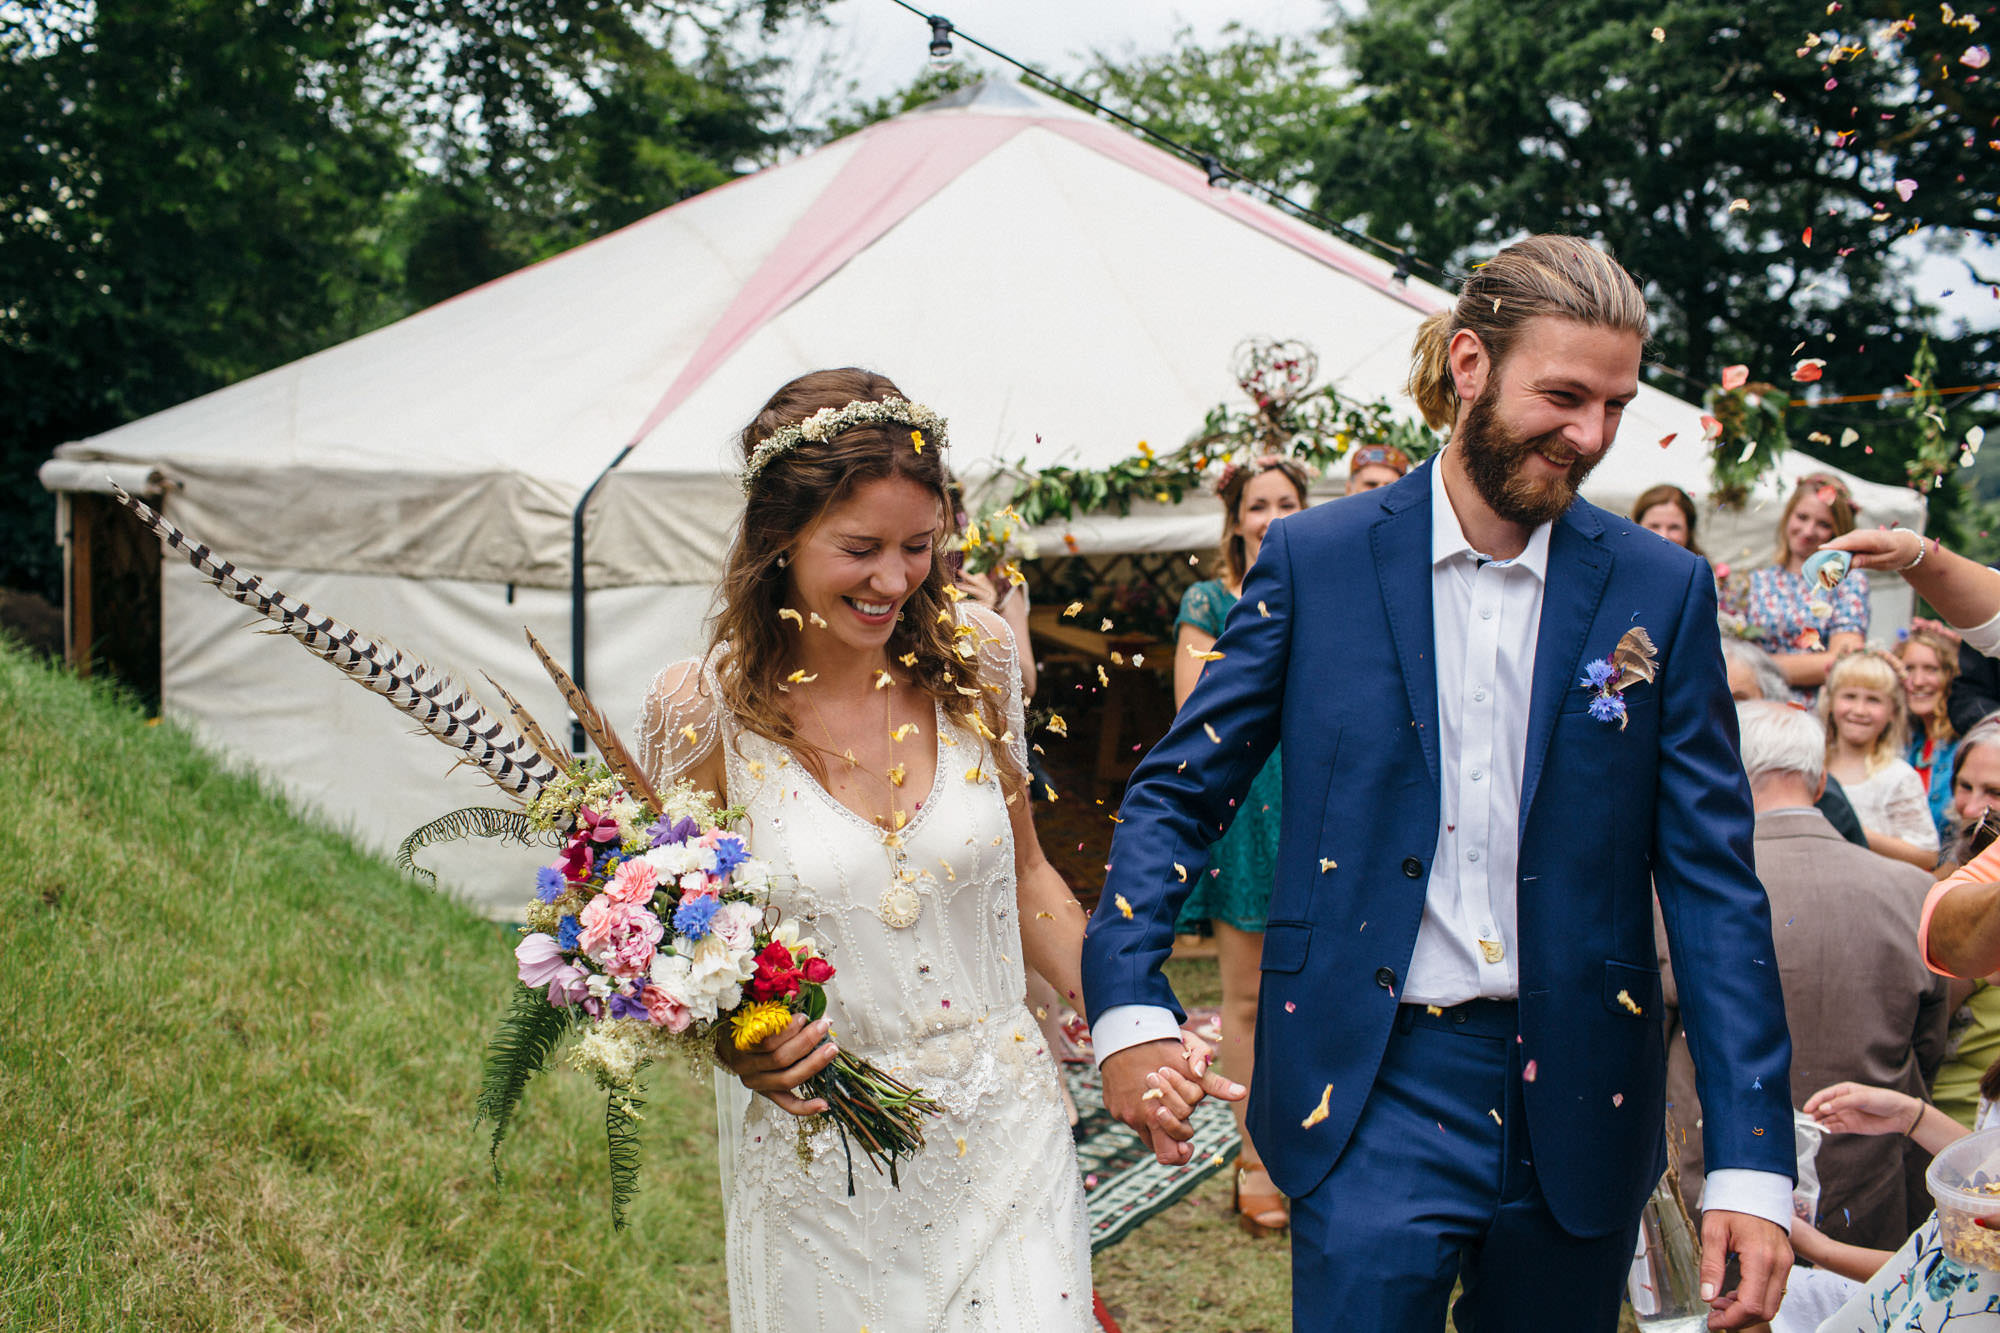 festival style wedding with yurt